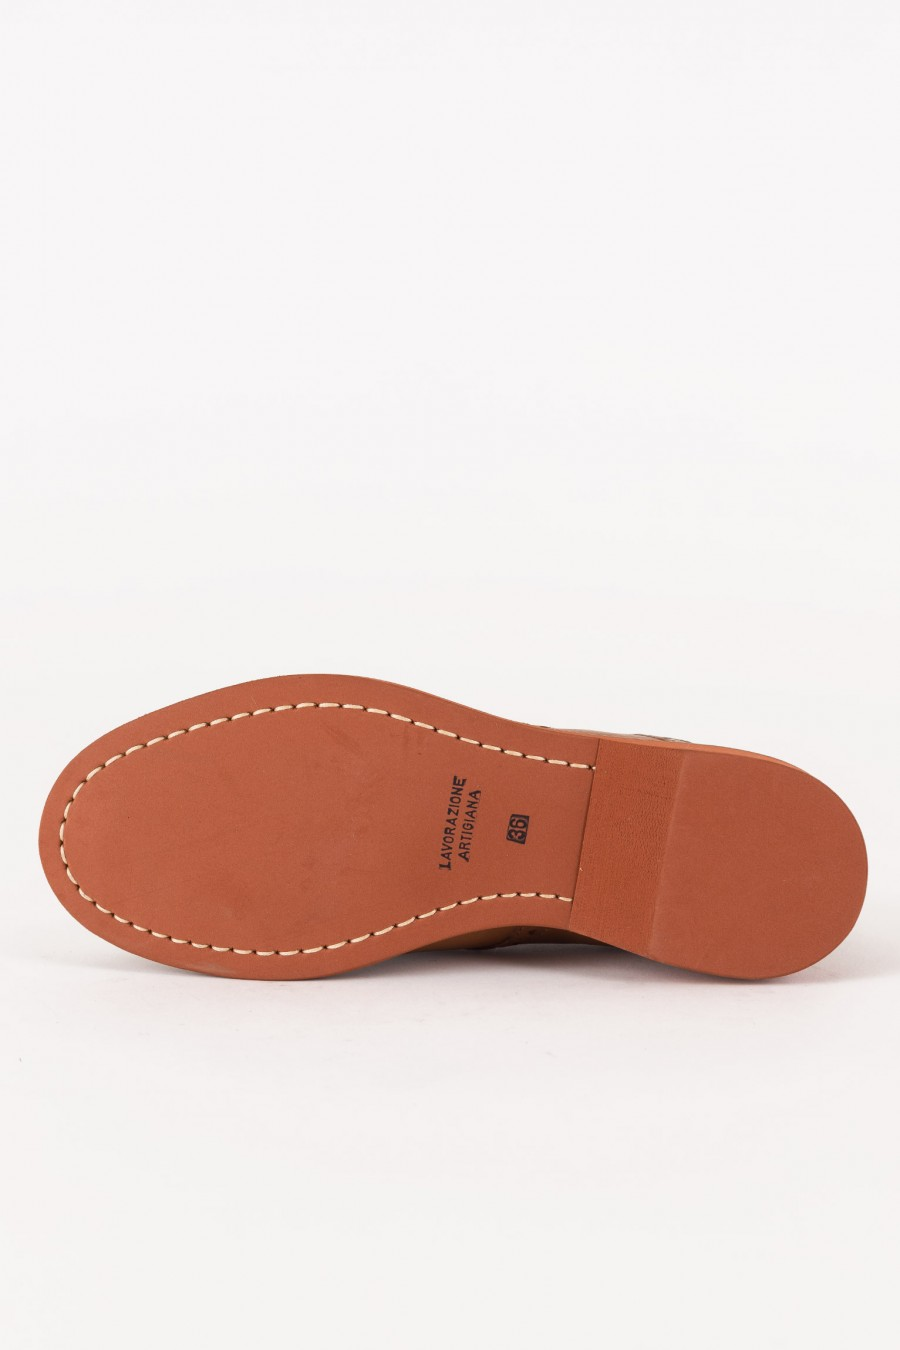 Brown shoes with rubber sole